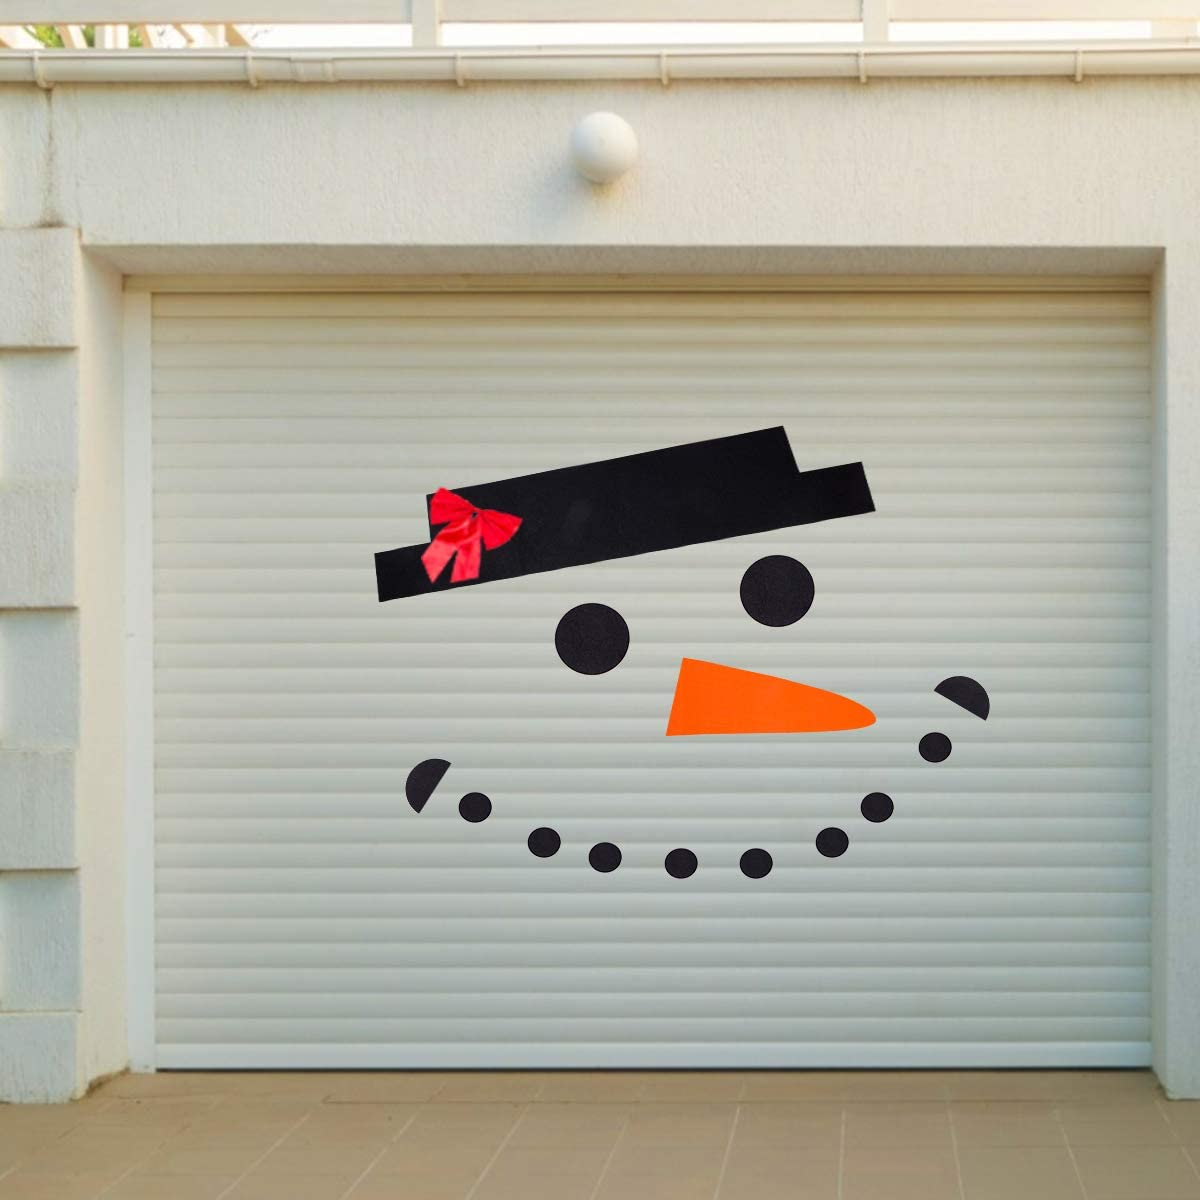 Garage Door Snowman (16PCS SET) ✨ Limited Time Sale! ✨